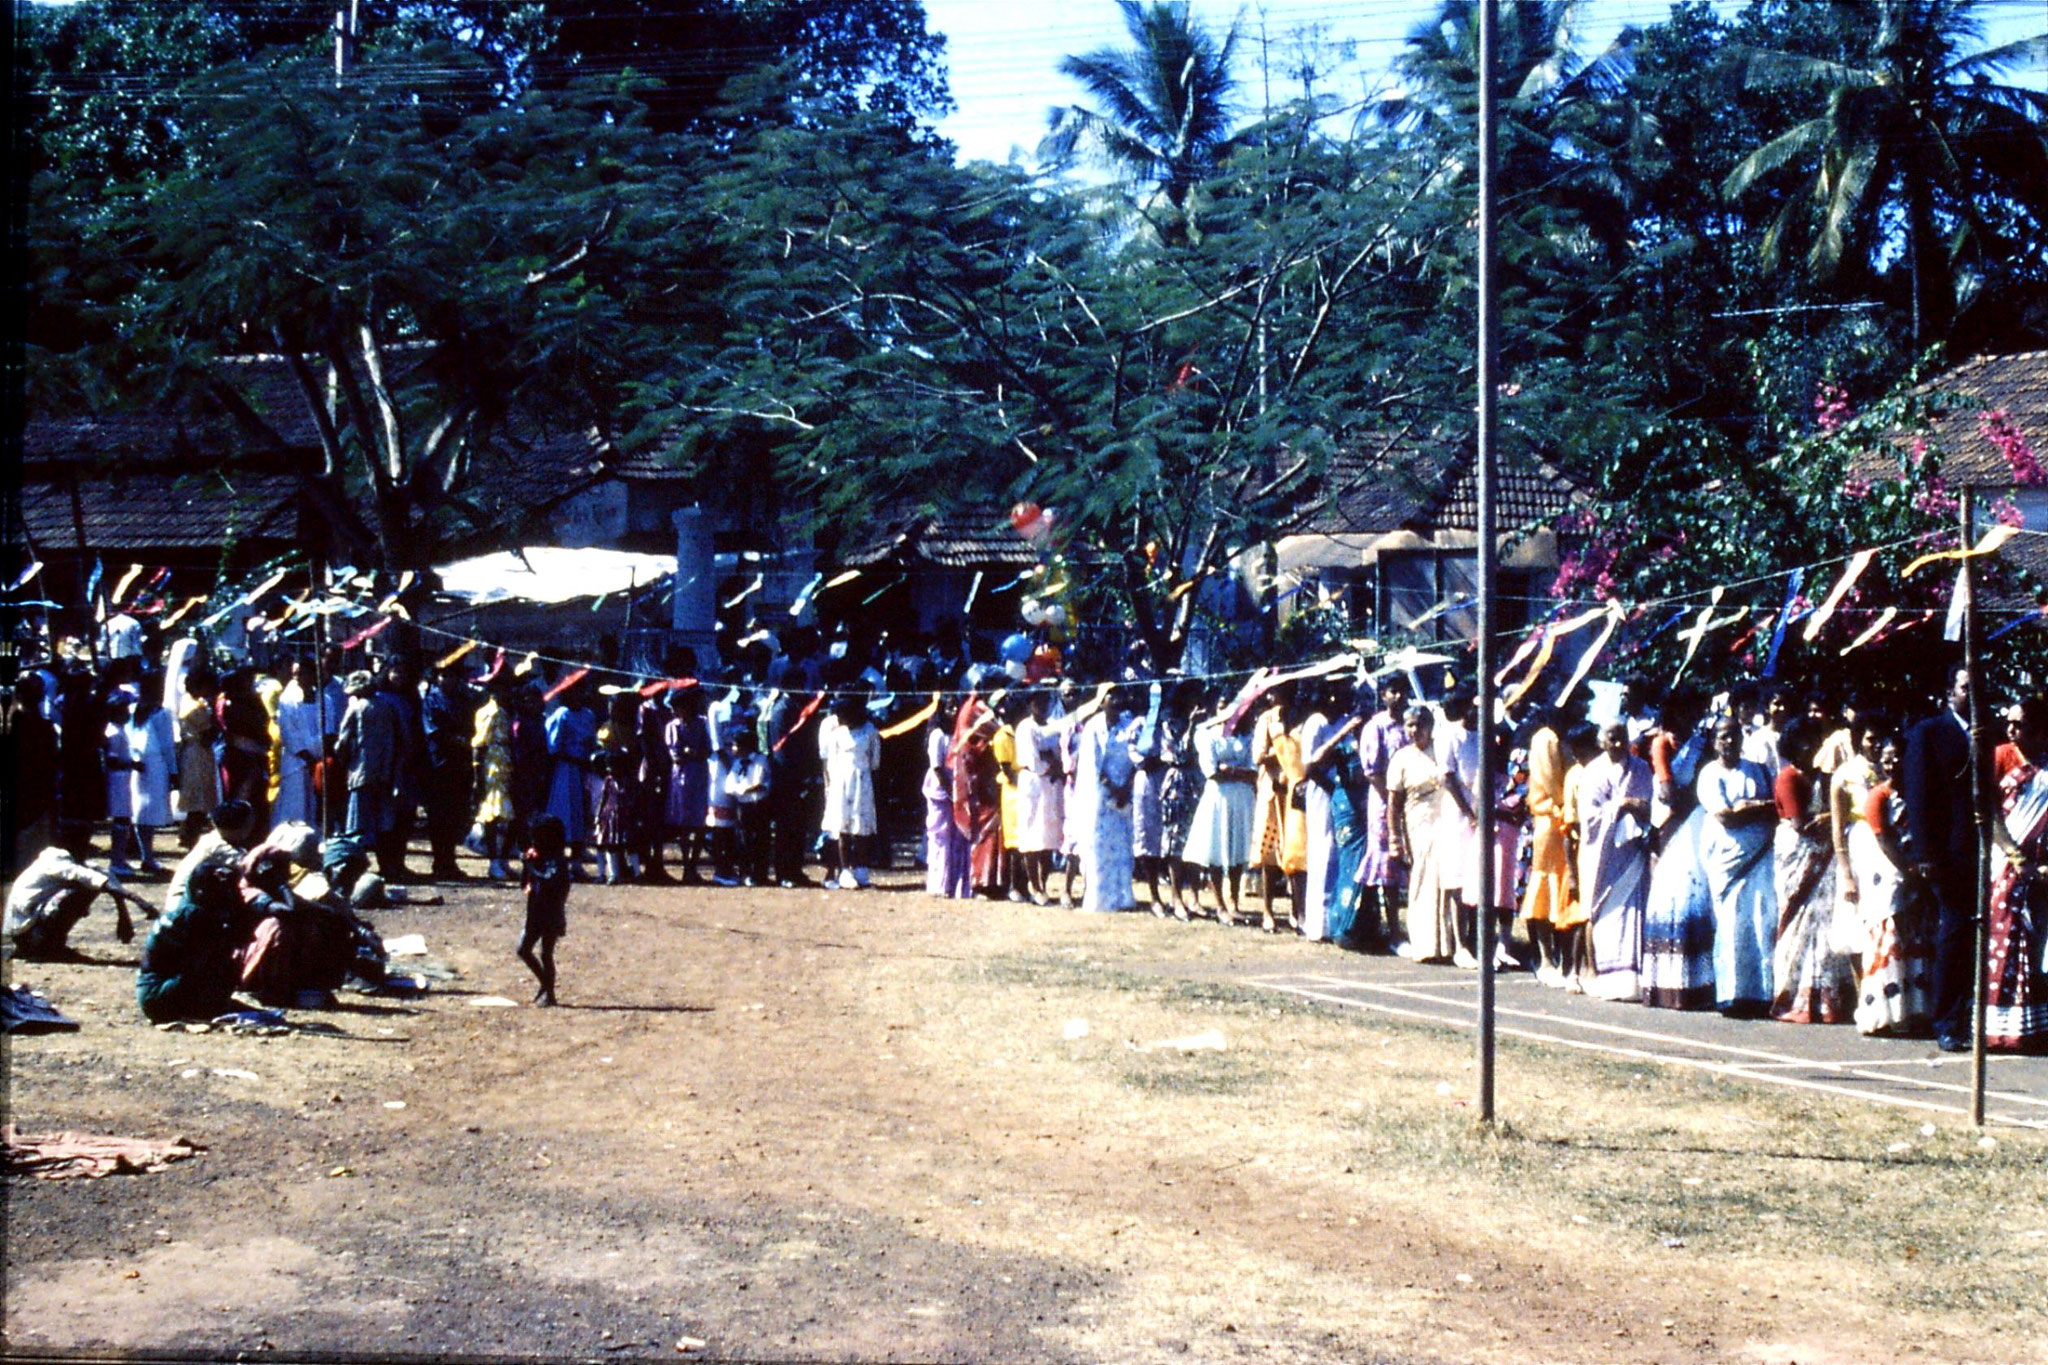 31/12/1989: 13: Siolim church and 10.30 mass procession